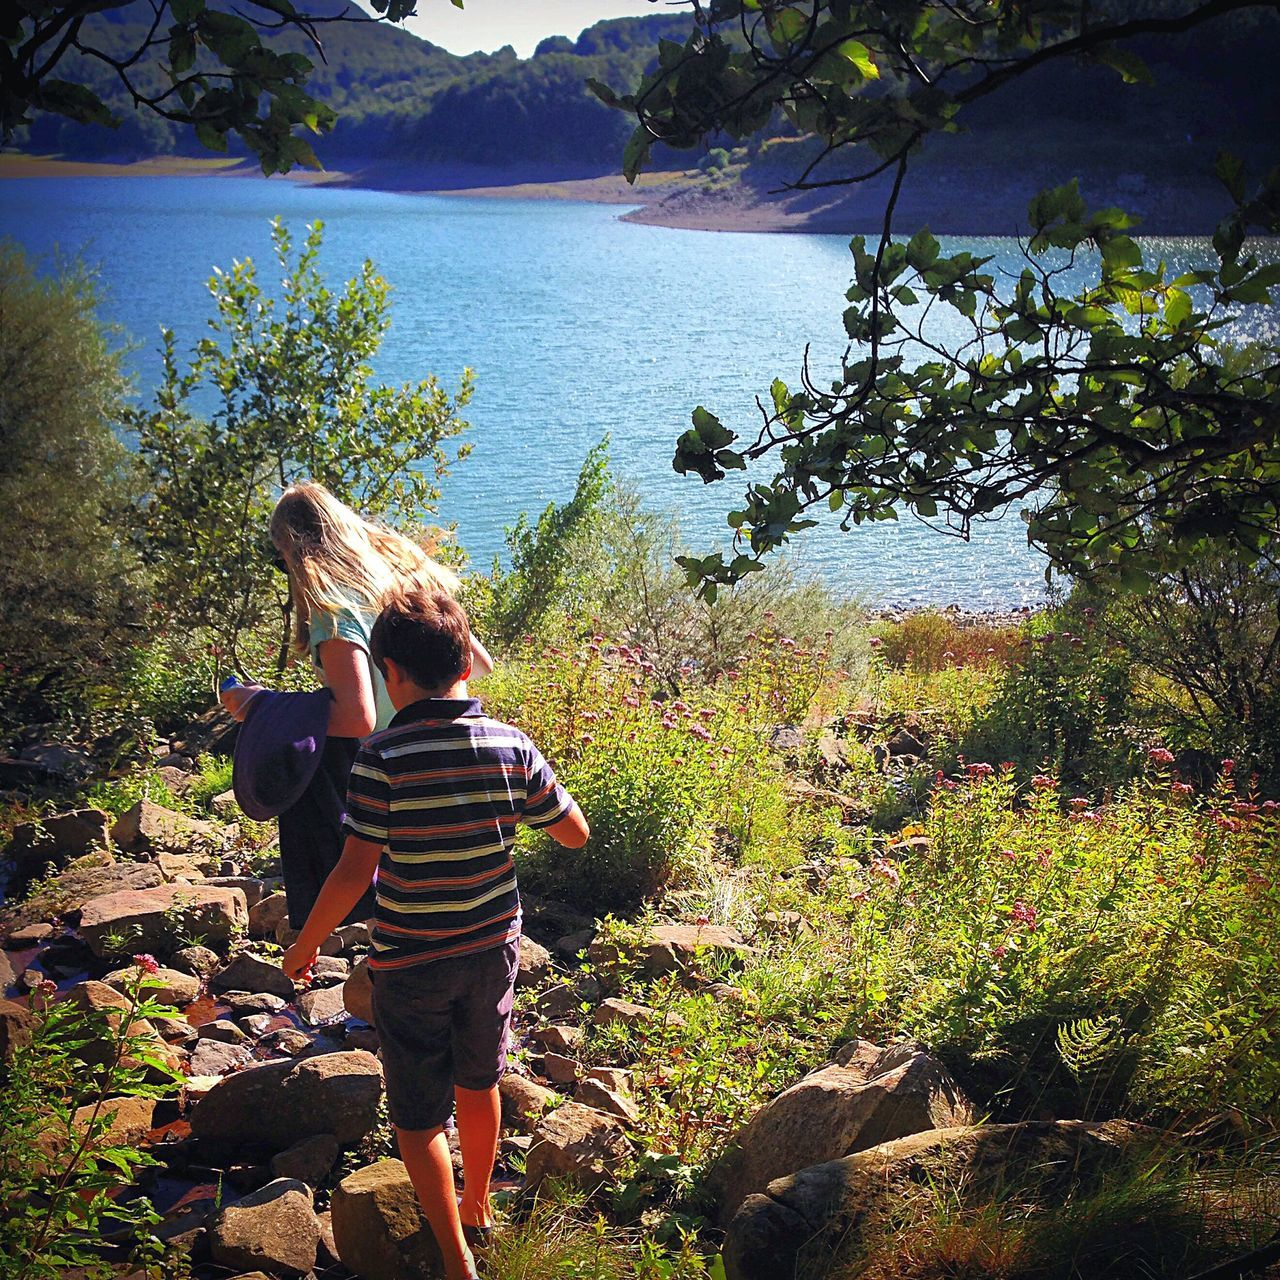 Rear View Togetherness Cousins  Friends Full Length Love Day Friendship Adventure Lake Lago Lake Paduli Italy Casual Clothing Nature Bonding Childhood Holiday Family Running Daughter Tranquility Leisure Activity People Vacations The Great Outdoors - 2017 EyeEm Awards